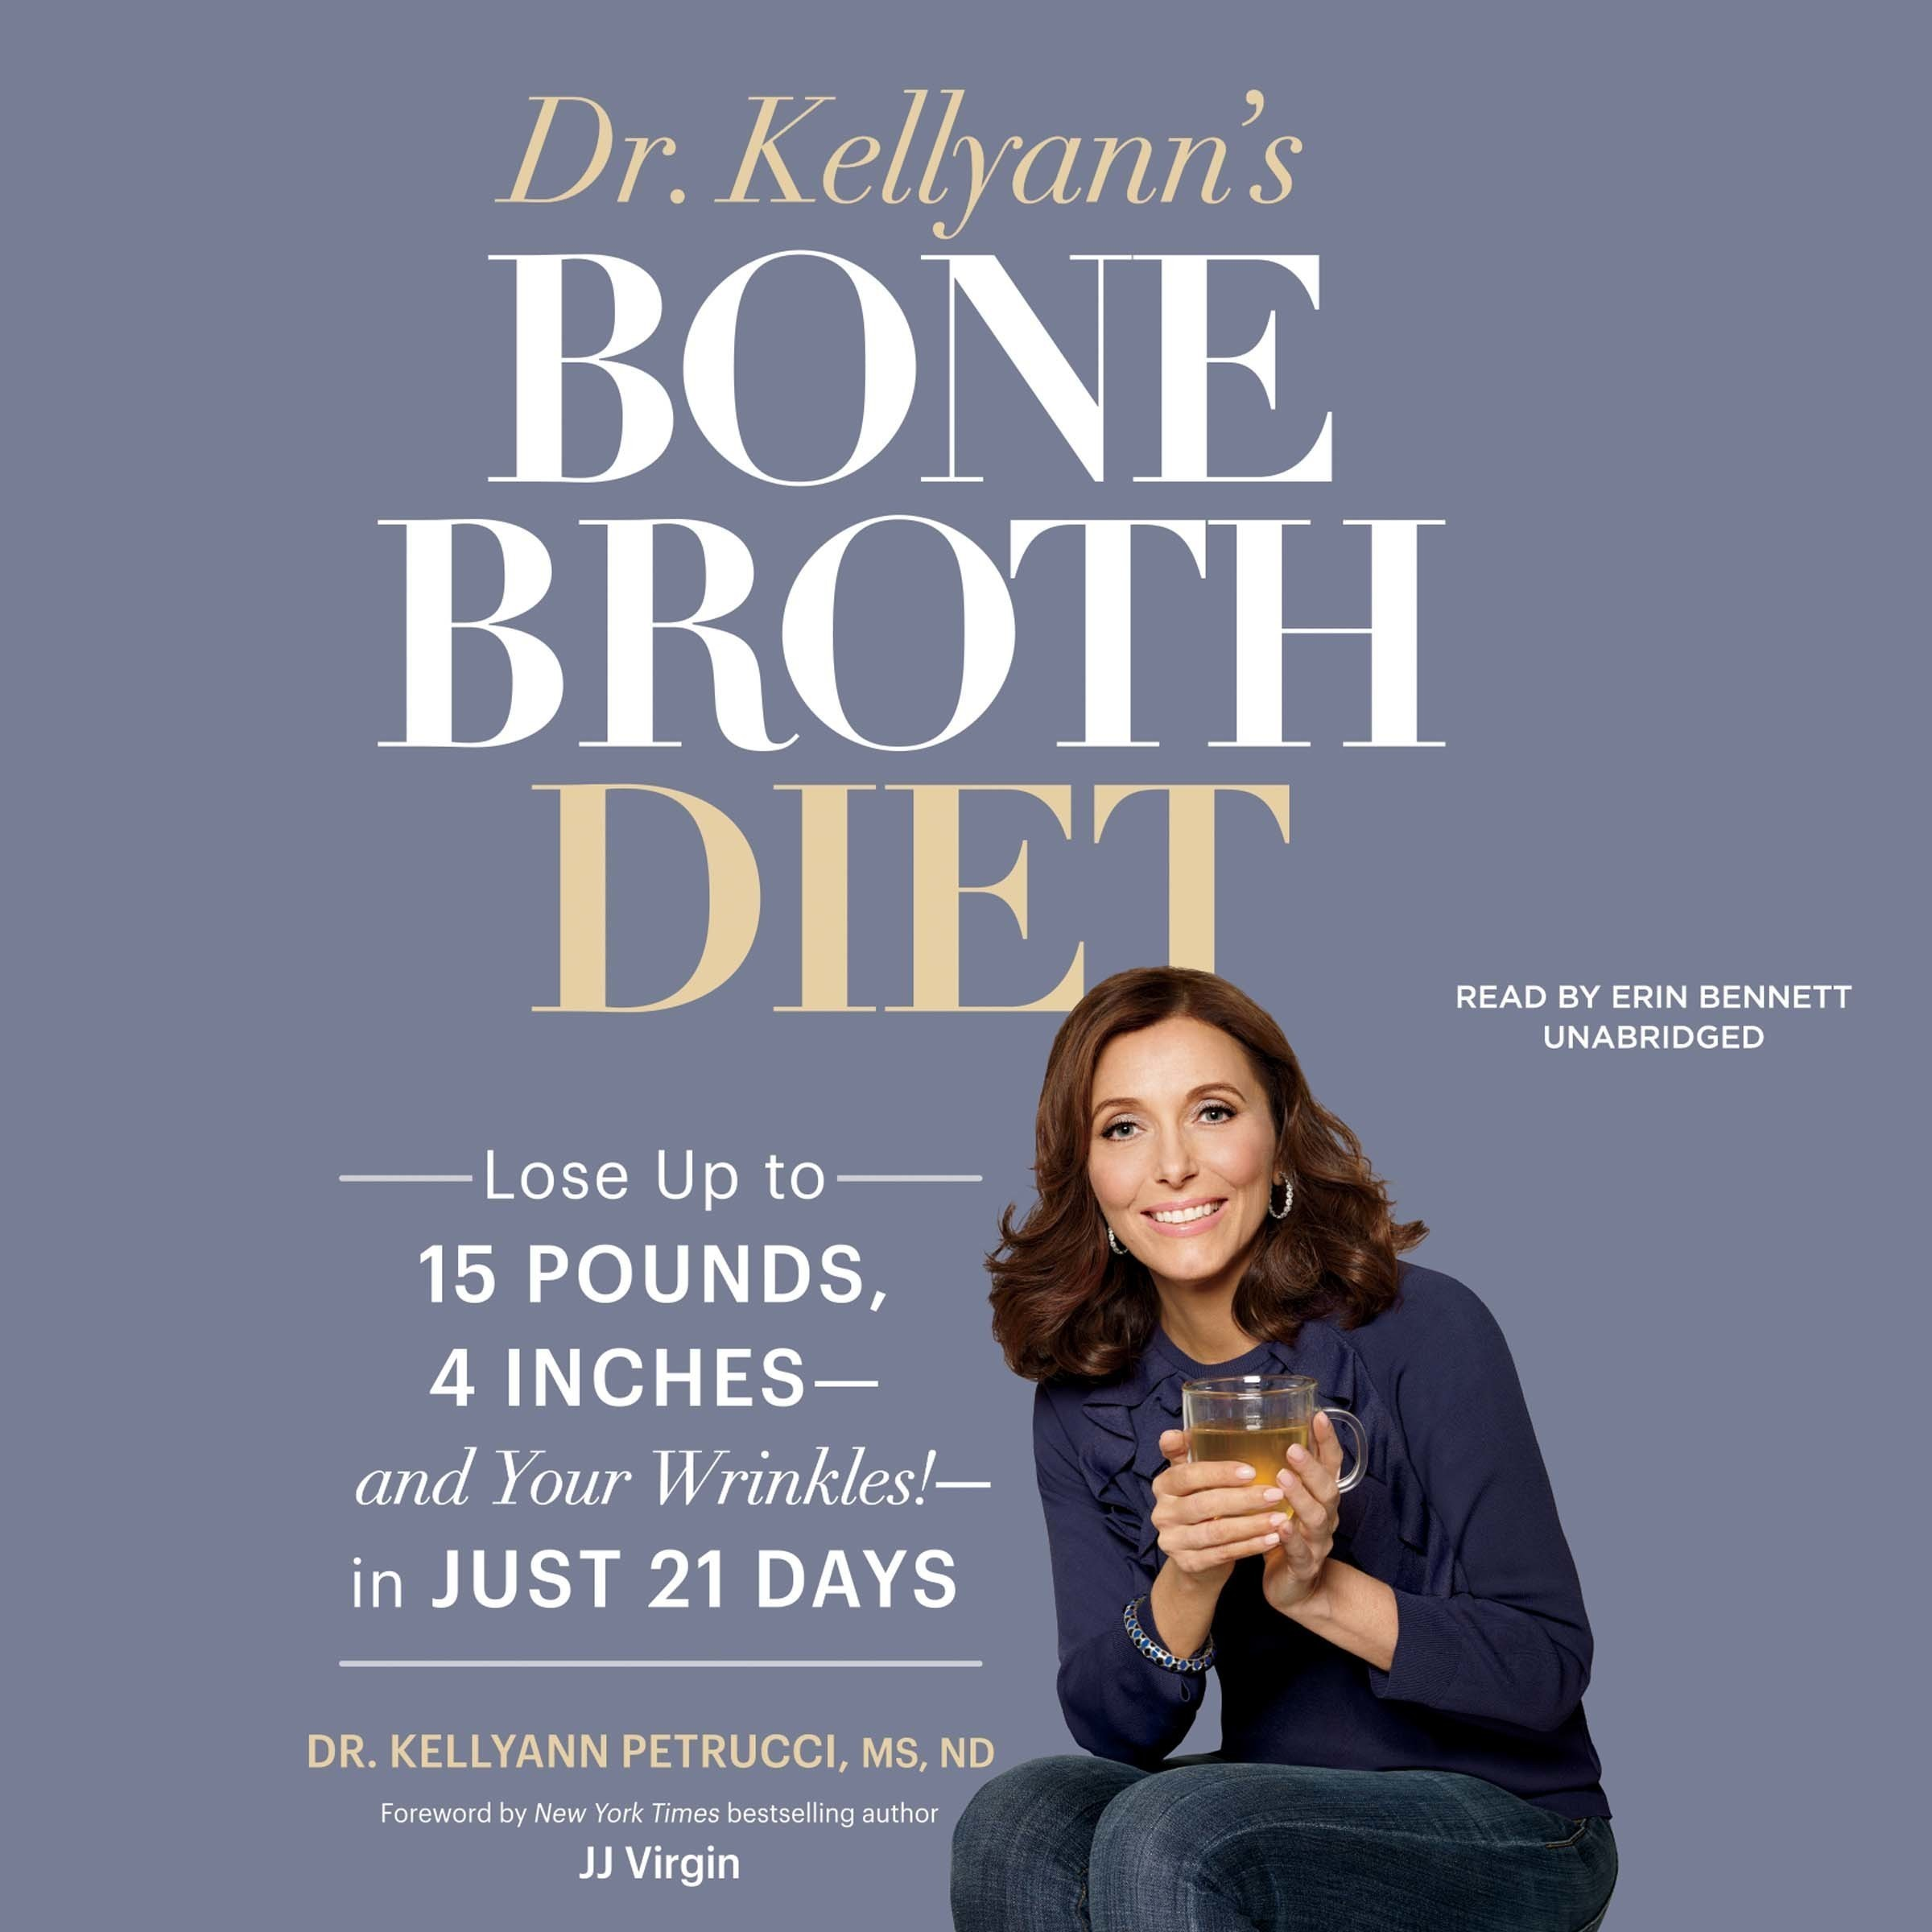 Printable Dr. Kellyann's Bone Broth Diet: Lose up to 15 Pounds, 4 Inches—and Your Wrinkles!—in Just 21 Days Audiobook Cover Art